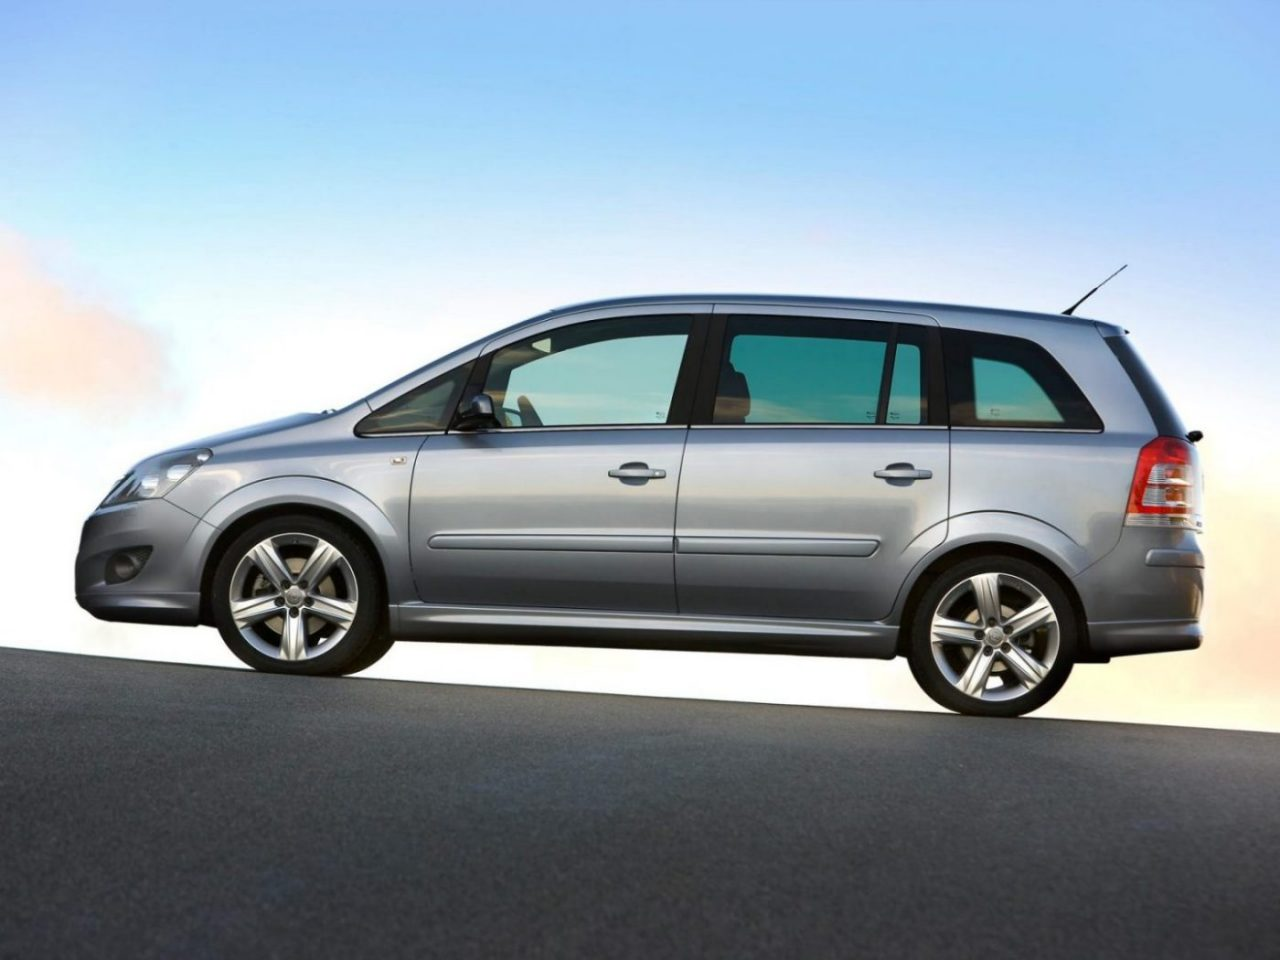 opel zafira 2005 specifications description photos. Black Bedroom Furniture Sets. Home Design Ideas